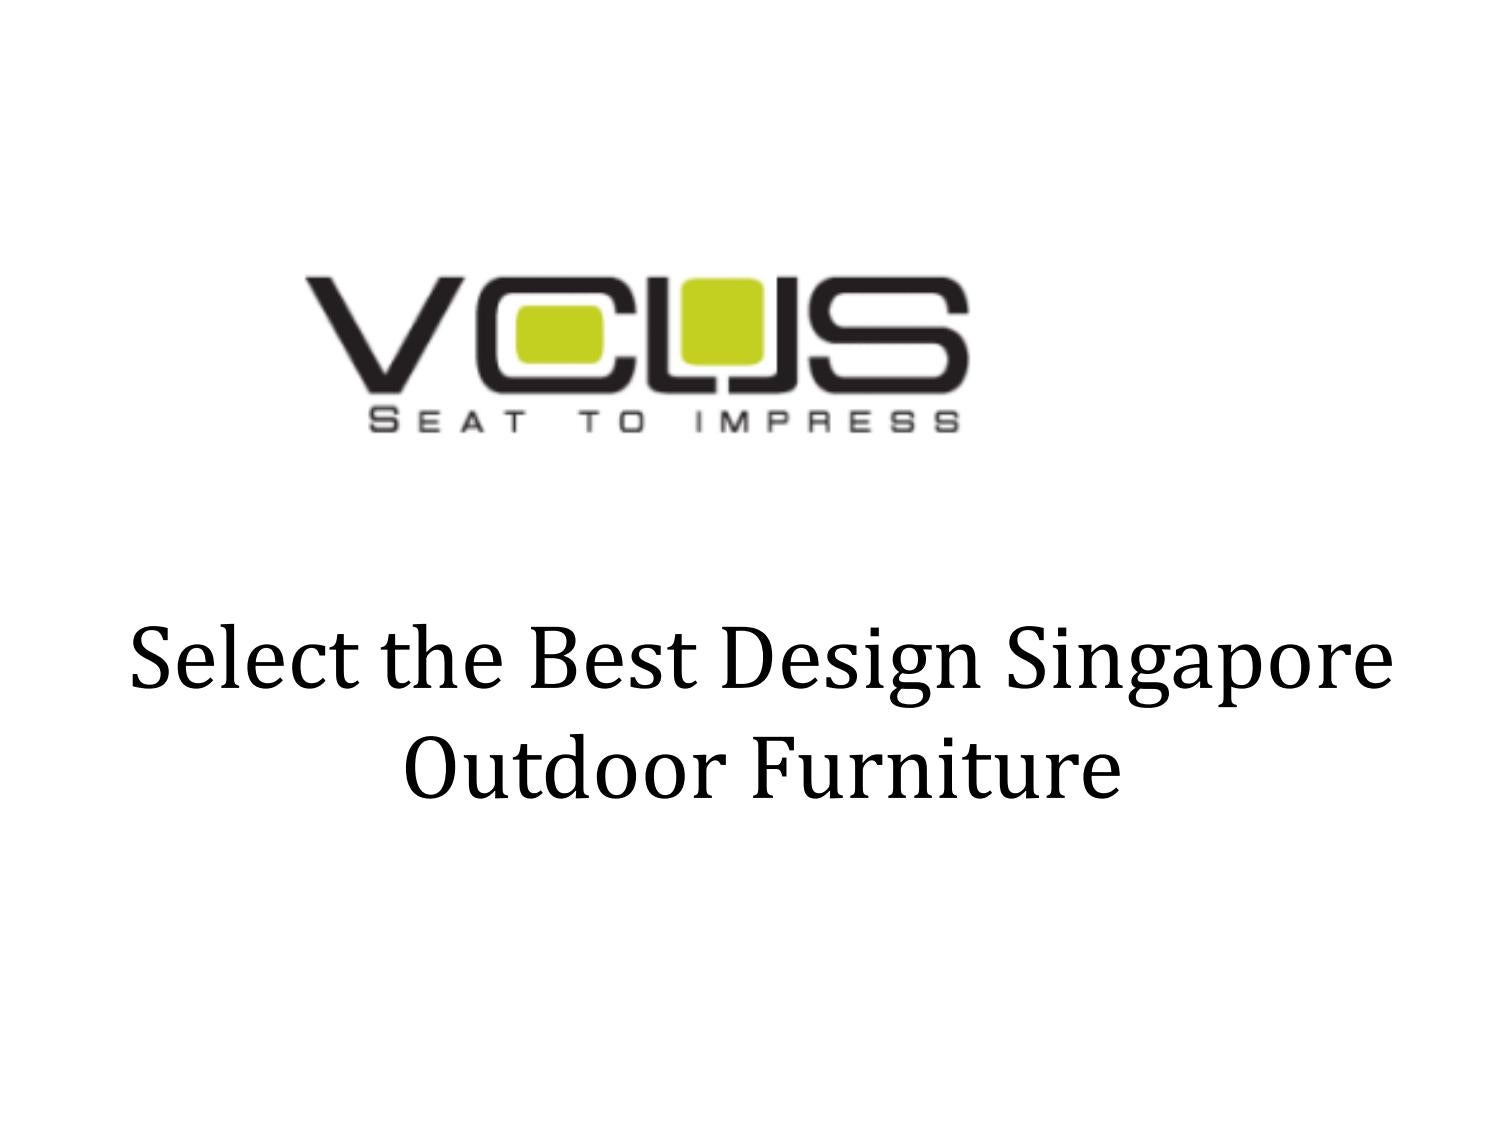 Select the Best Design Singapore Outdoor Furniture